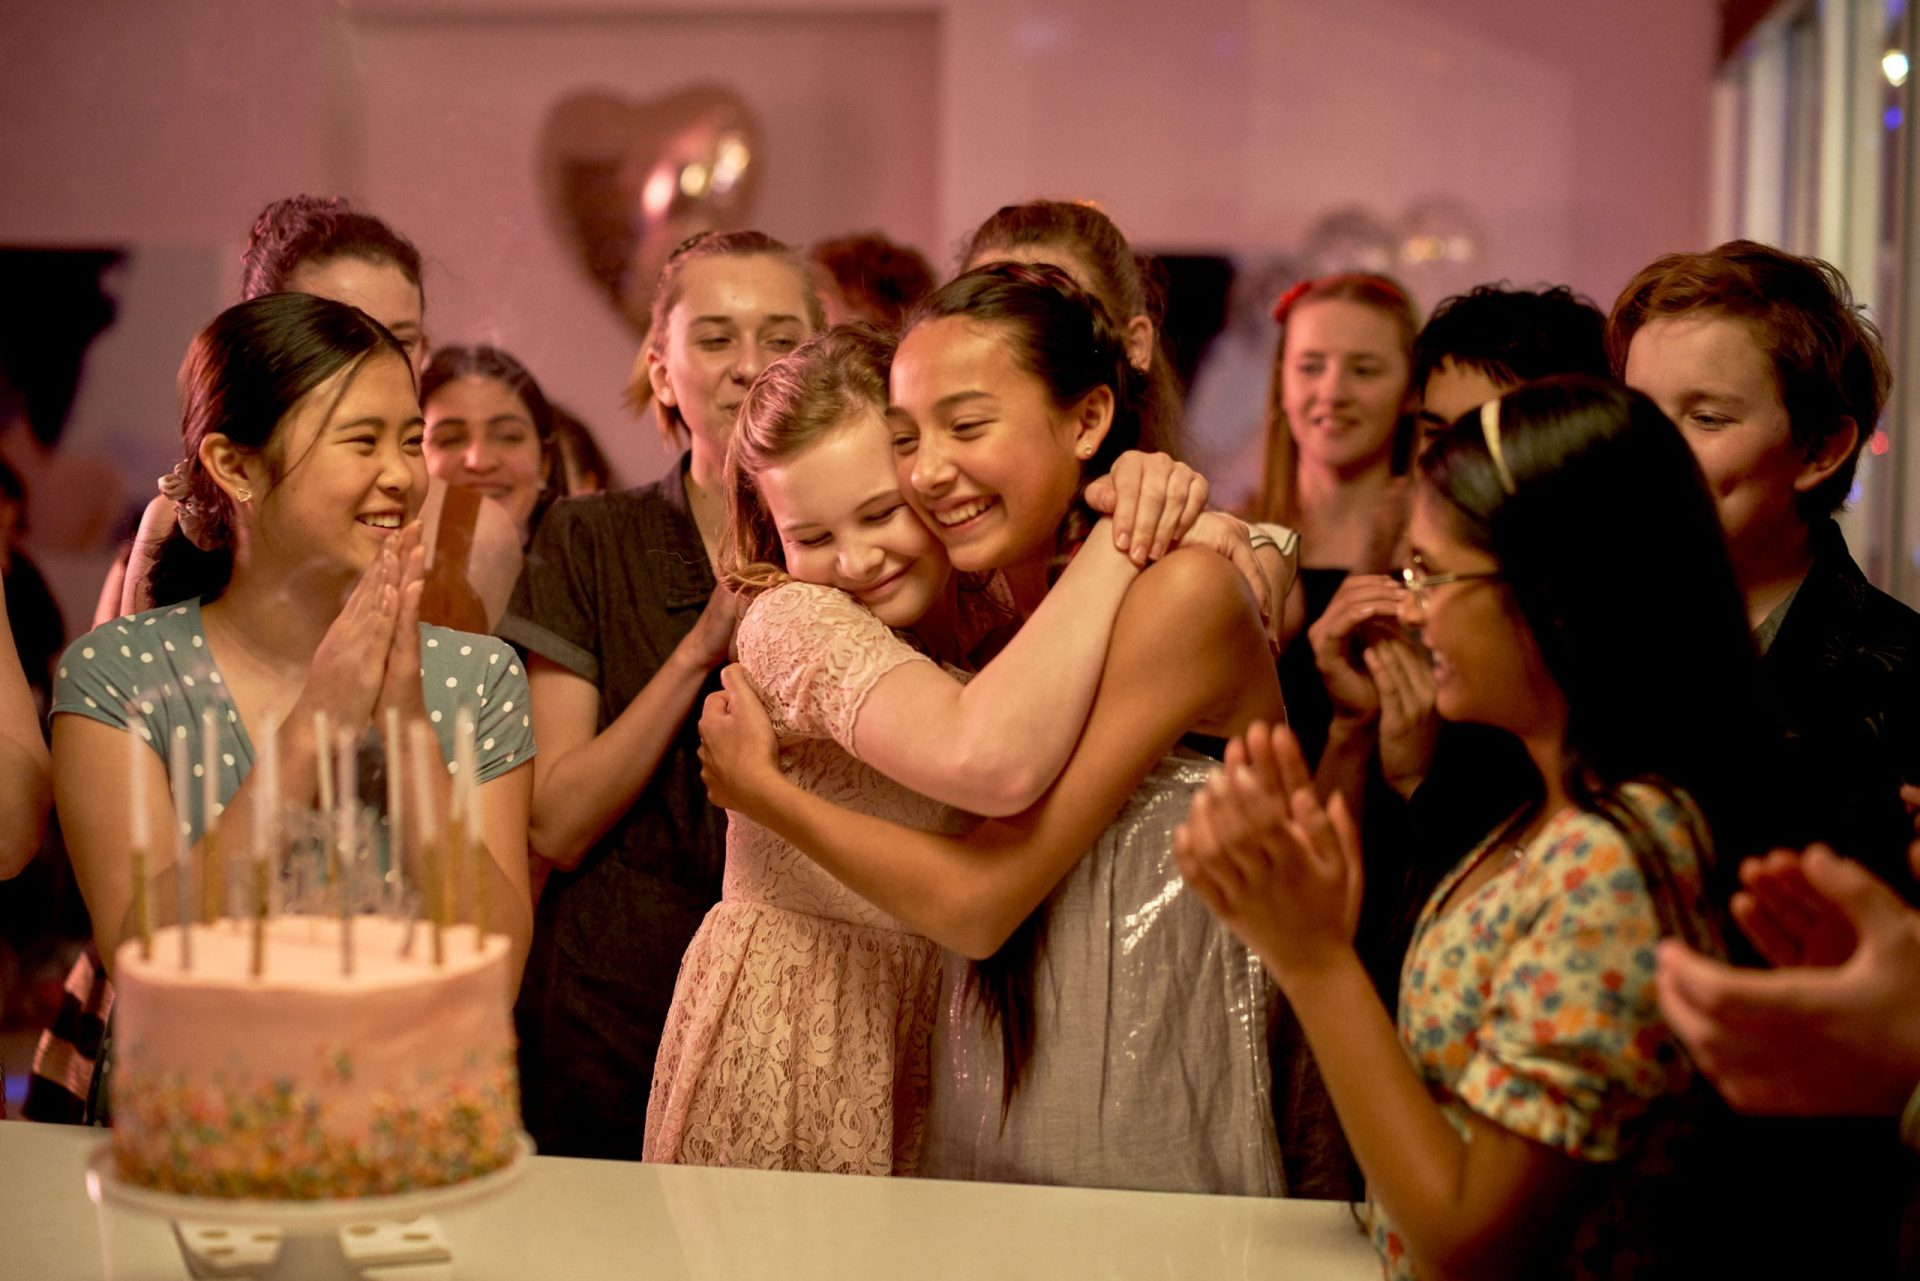 First Day (2019): Evie Macdonald hugs Arwen Diamond, while Elena Liu and Nandini Rajagopal look on. Photo by ian Routledge, courtesy Epic Films